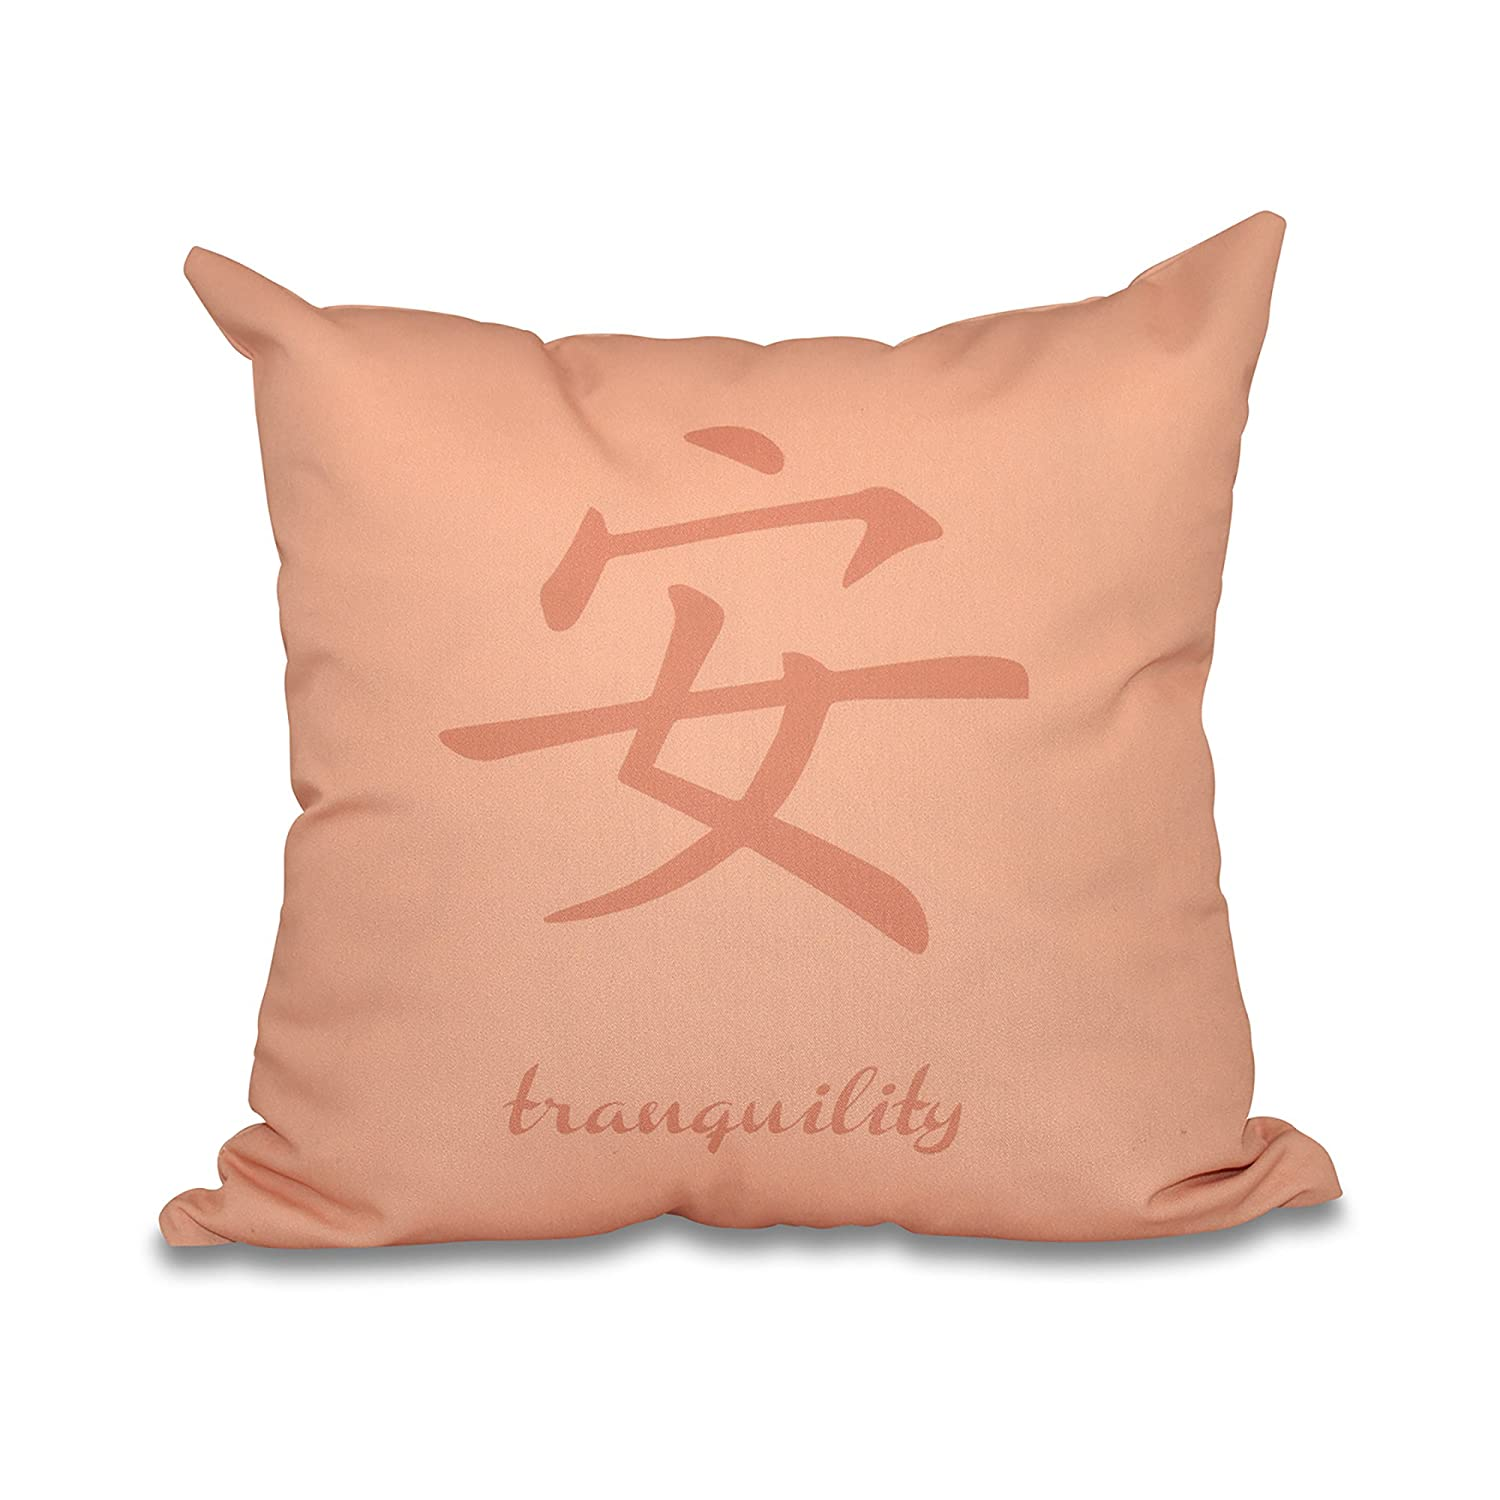 Coral 18x18 Orange Word Print Pillow E by design PWN510OR4OR10-18 18 x 18-inch,Tranquility red